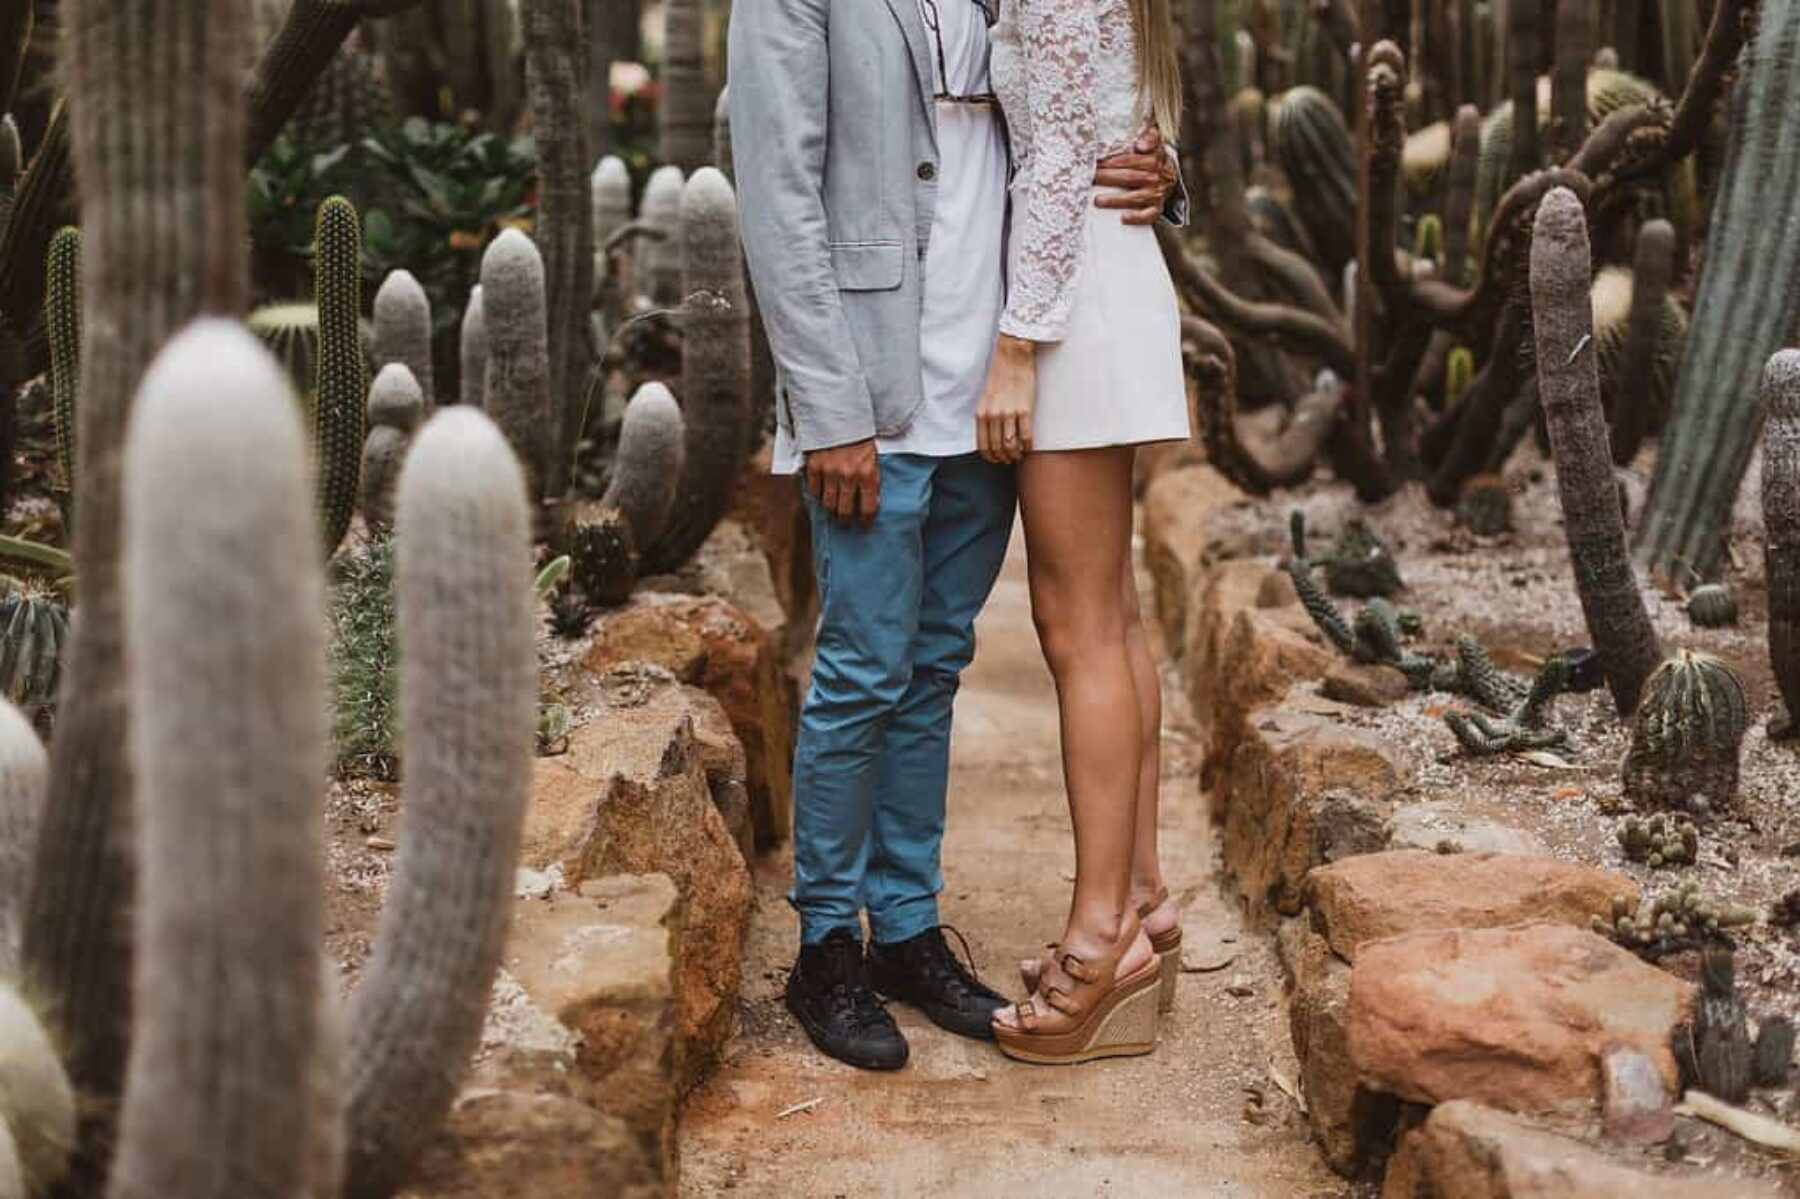 Cactus farm engagement shoot / photography by Janneke Storm